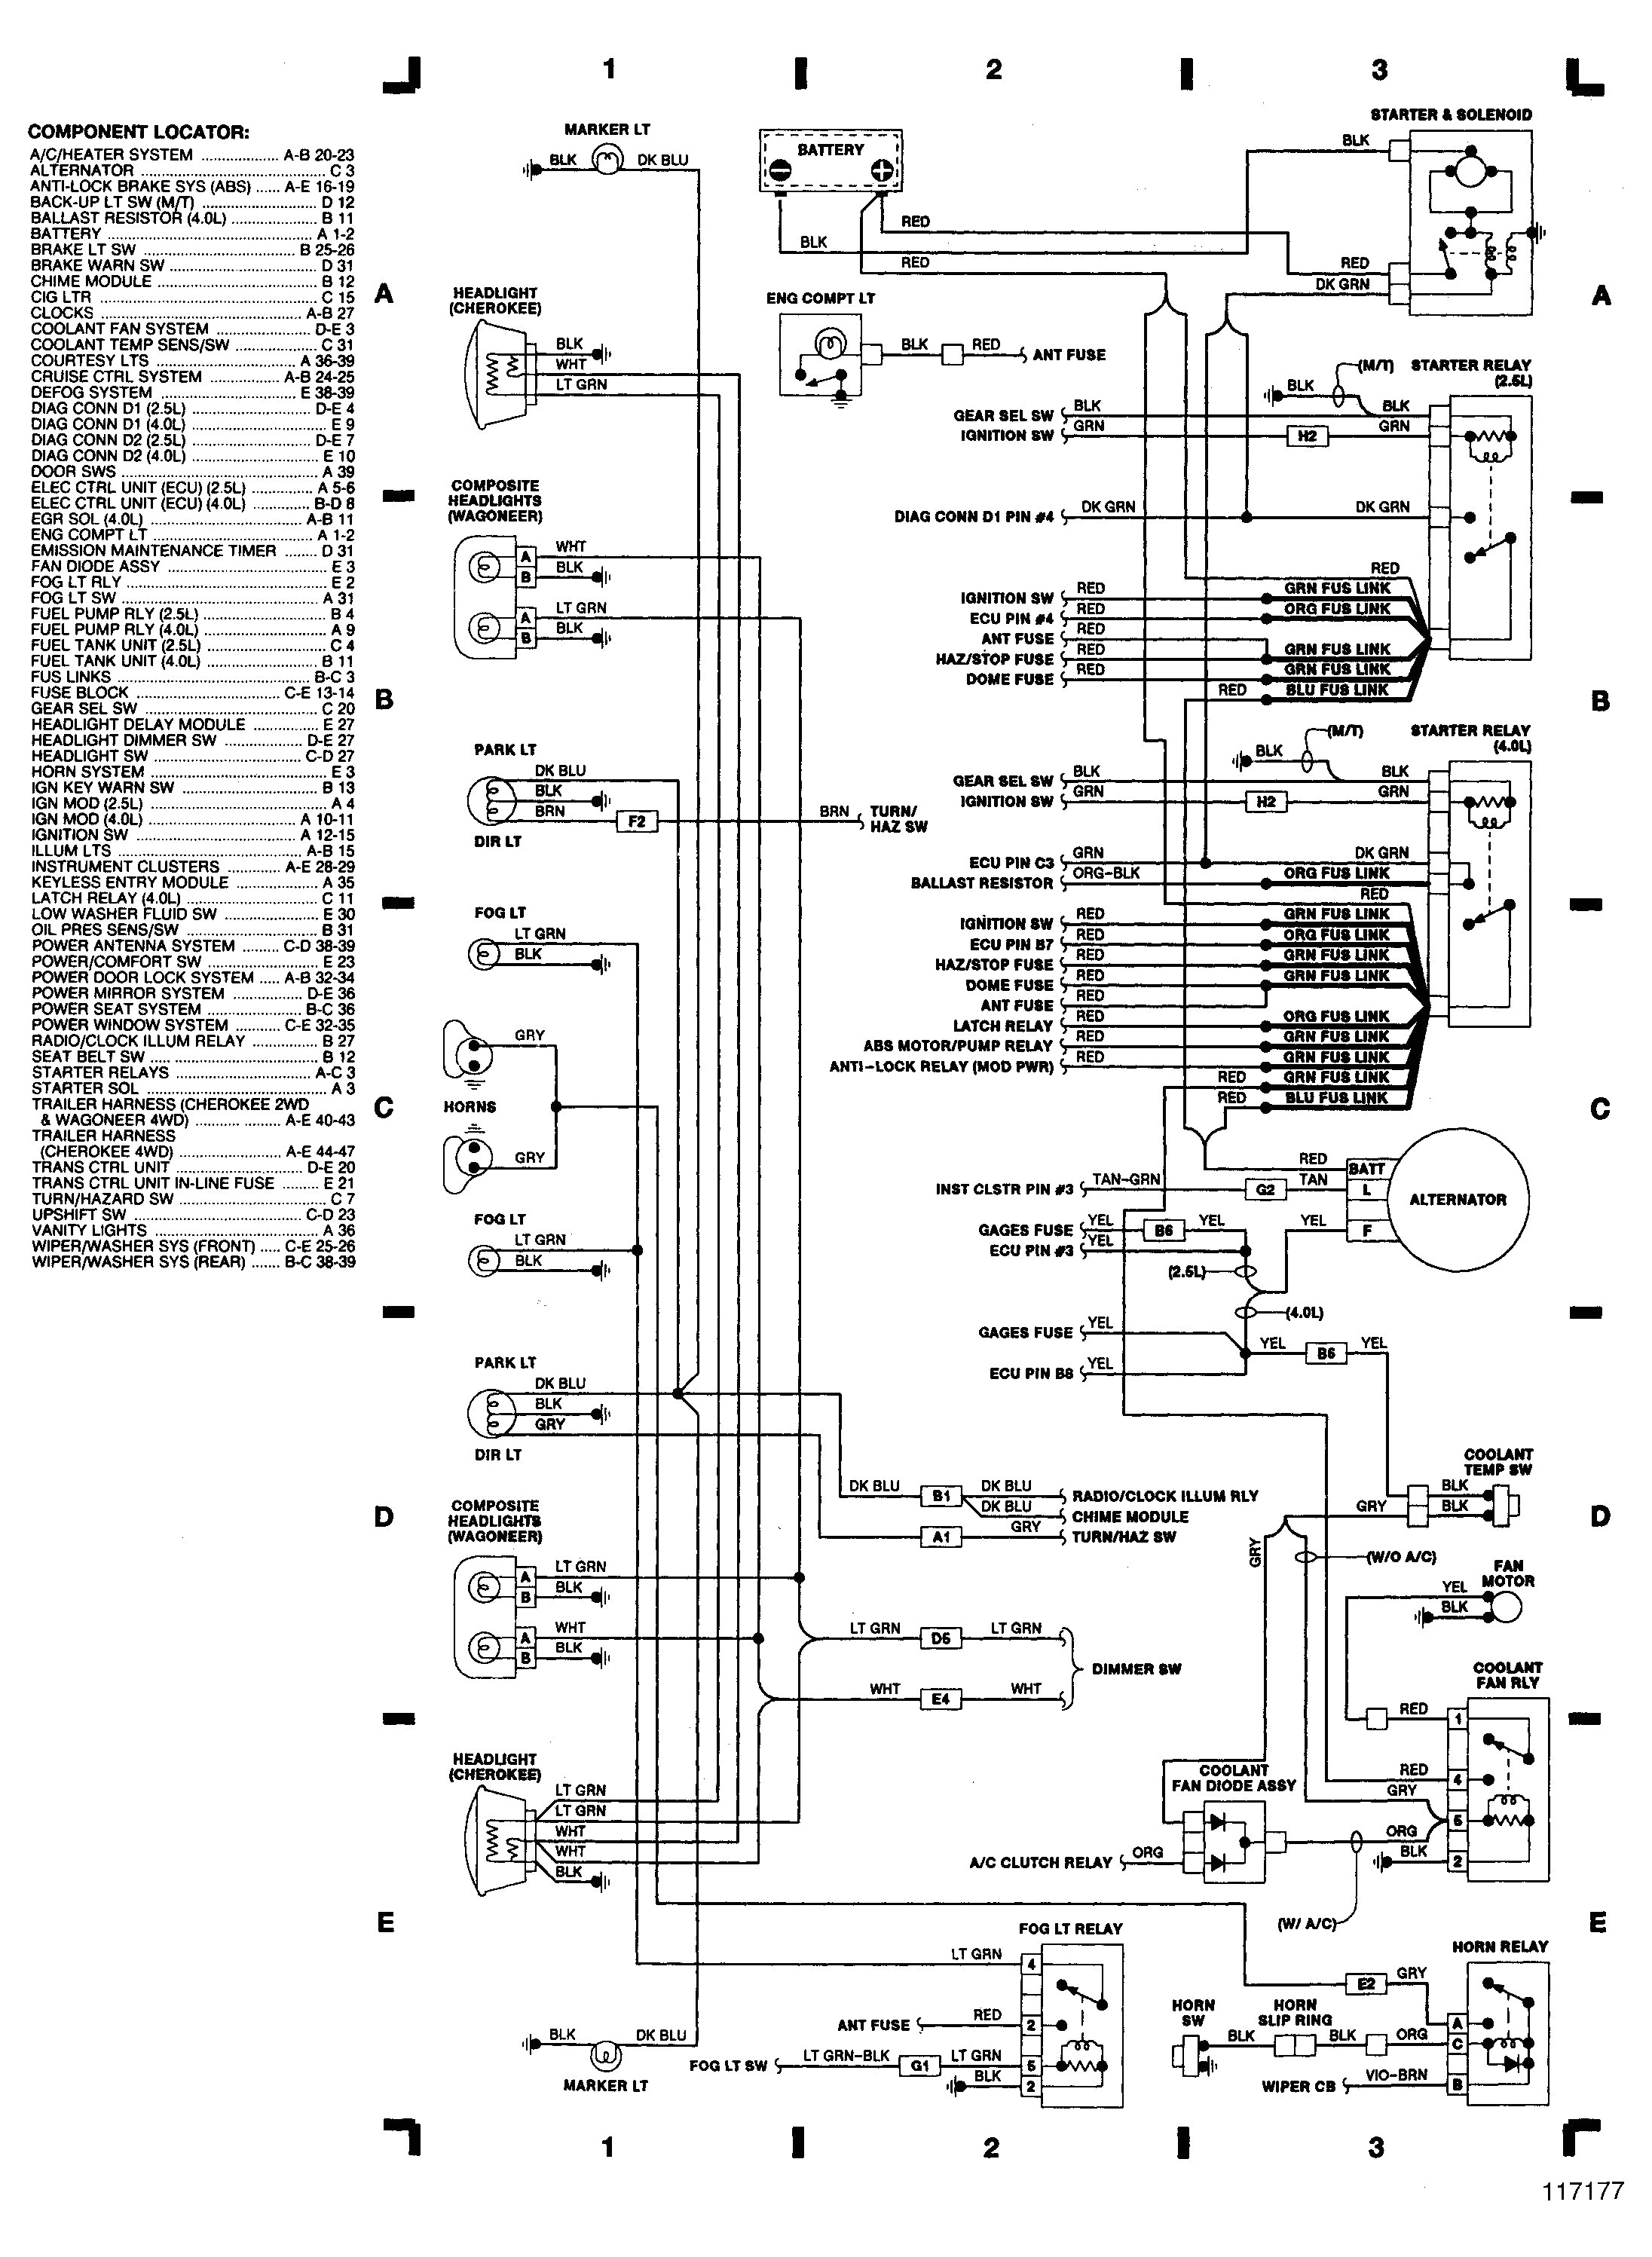 diagram likewise jeep grand cherokee water pump location moreover grand am also jeep cherokee xj wiring diagrams besides 2000 jeep